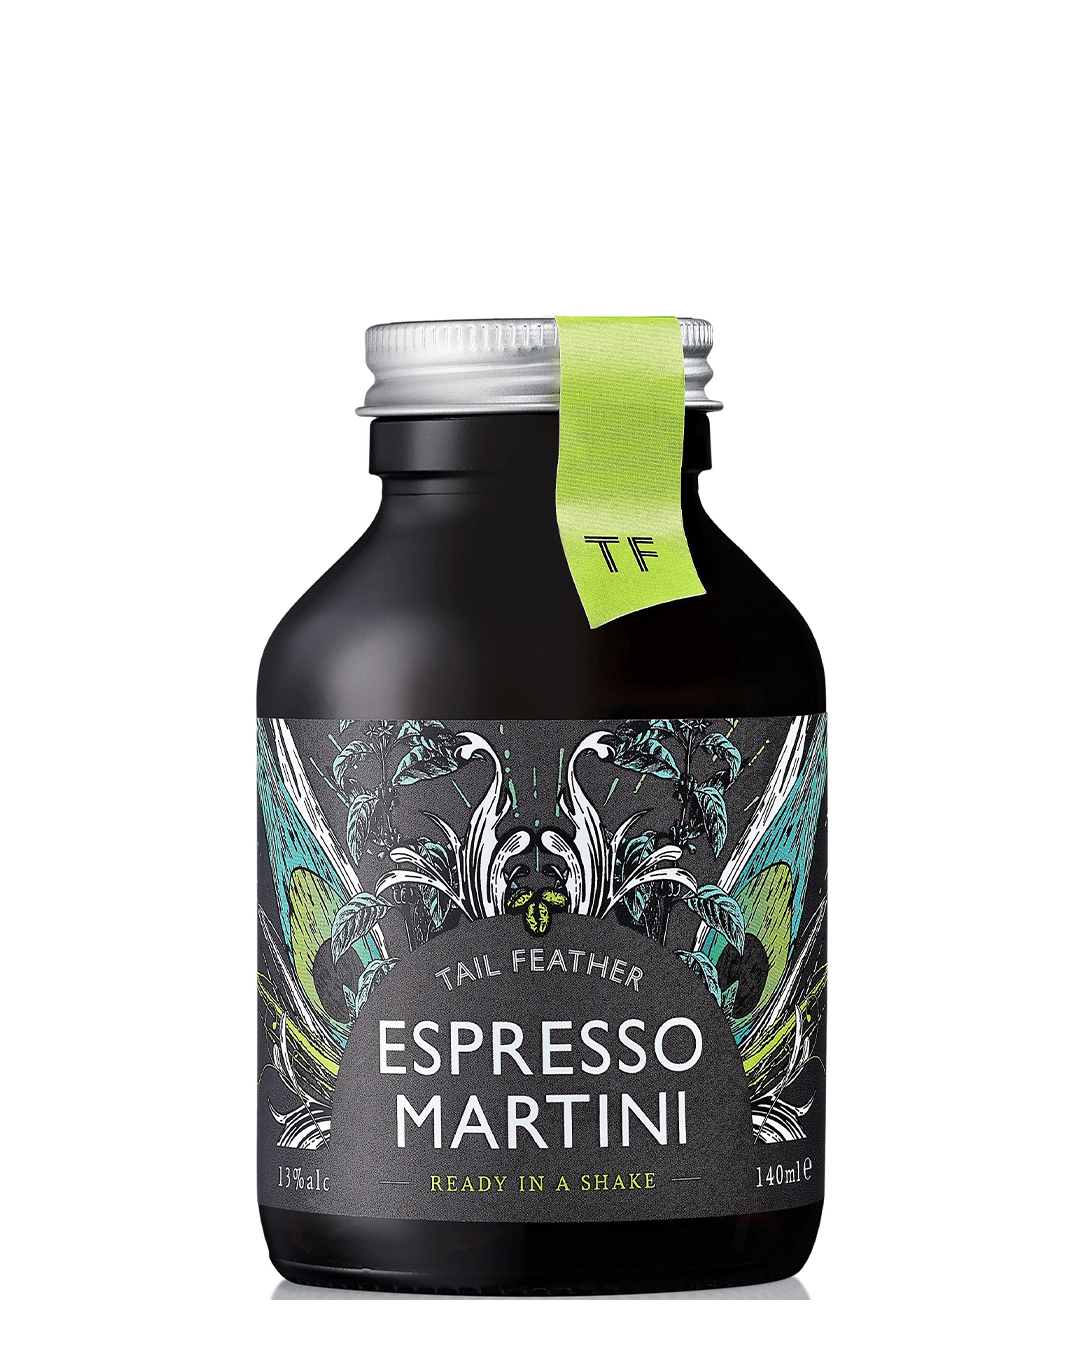 Tail Feather Espresso Martini, 140 ml